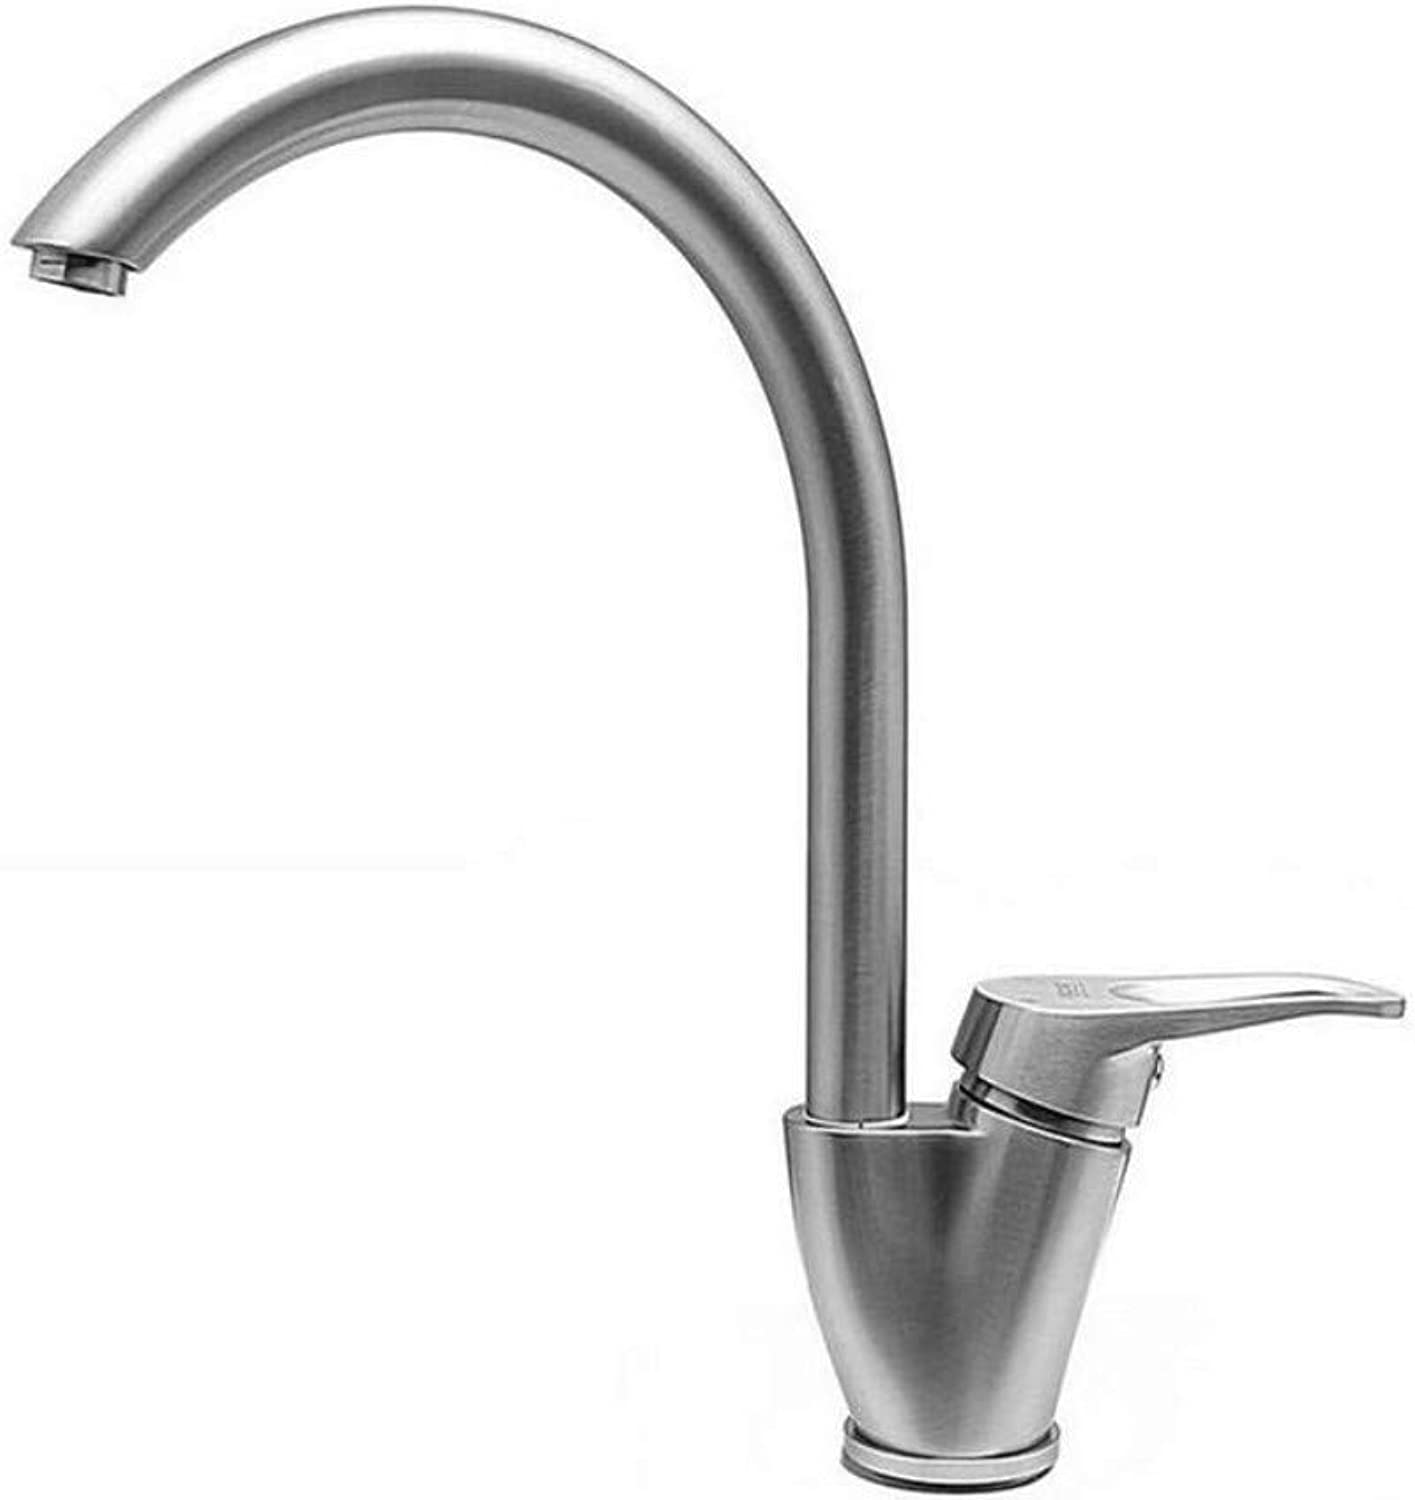 Taps Kitchen Sink Stainless Steel Casting Swivel Bathroom Lavatory Basin Vessel Kitchen Sink Mixer Tap